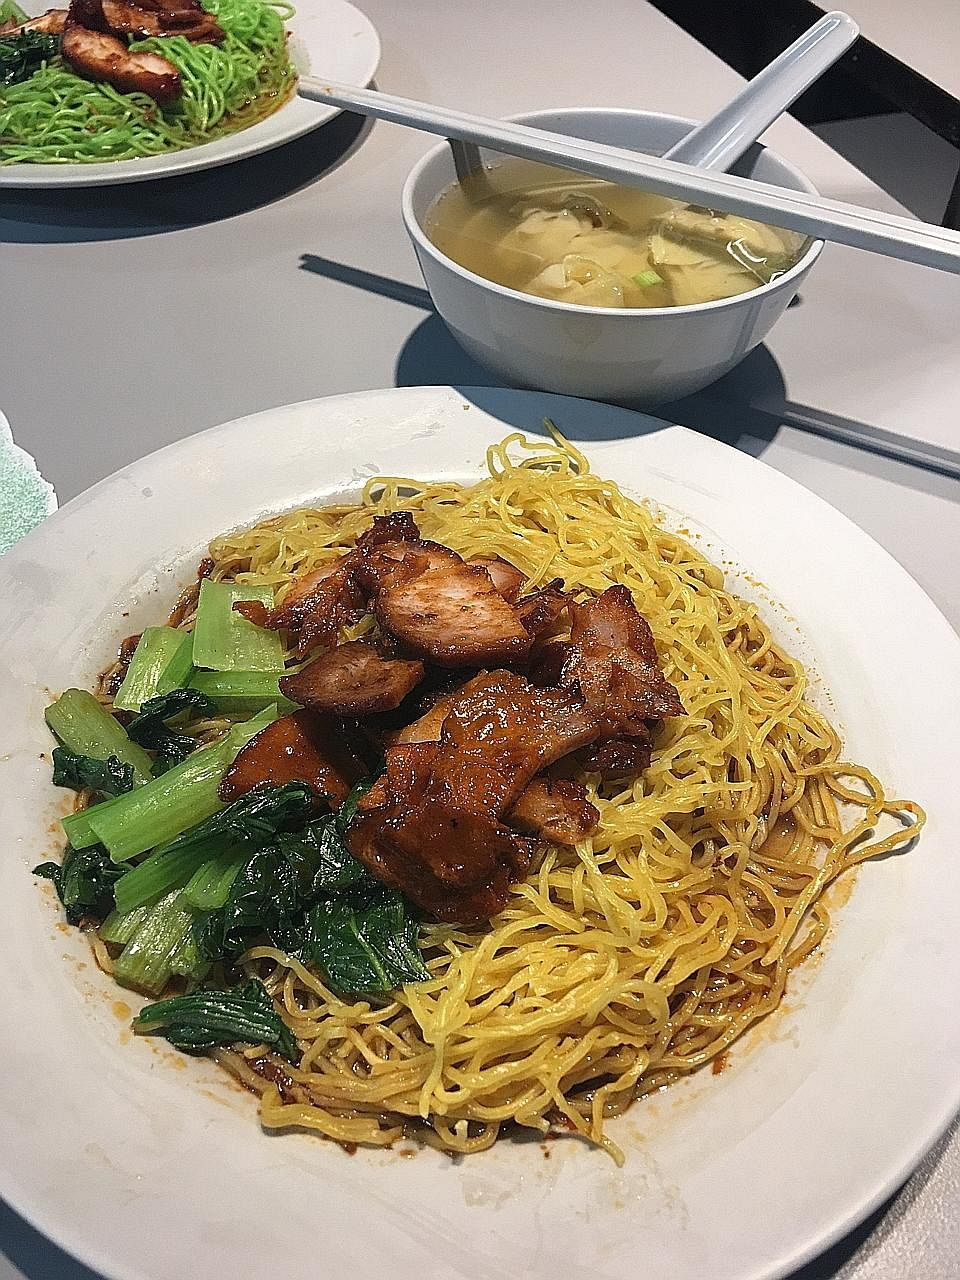 Swee Heng Wanton Noodle's wonton mee comes with thick slices of char siew and juicy boiled dumplings.